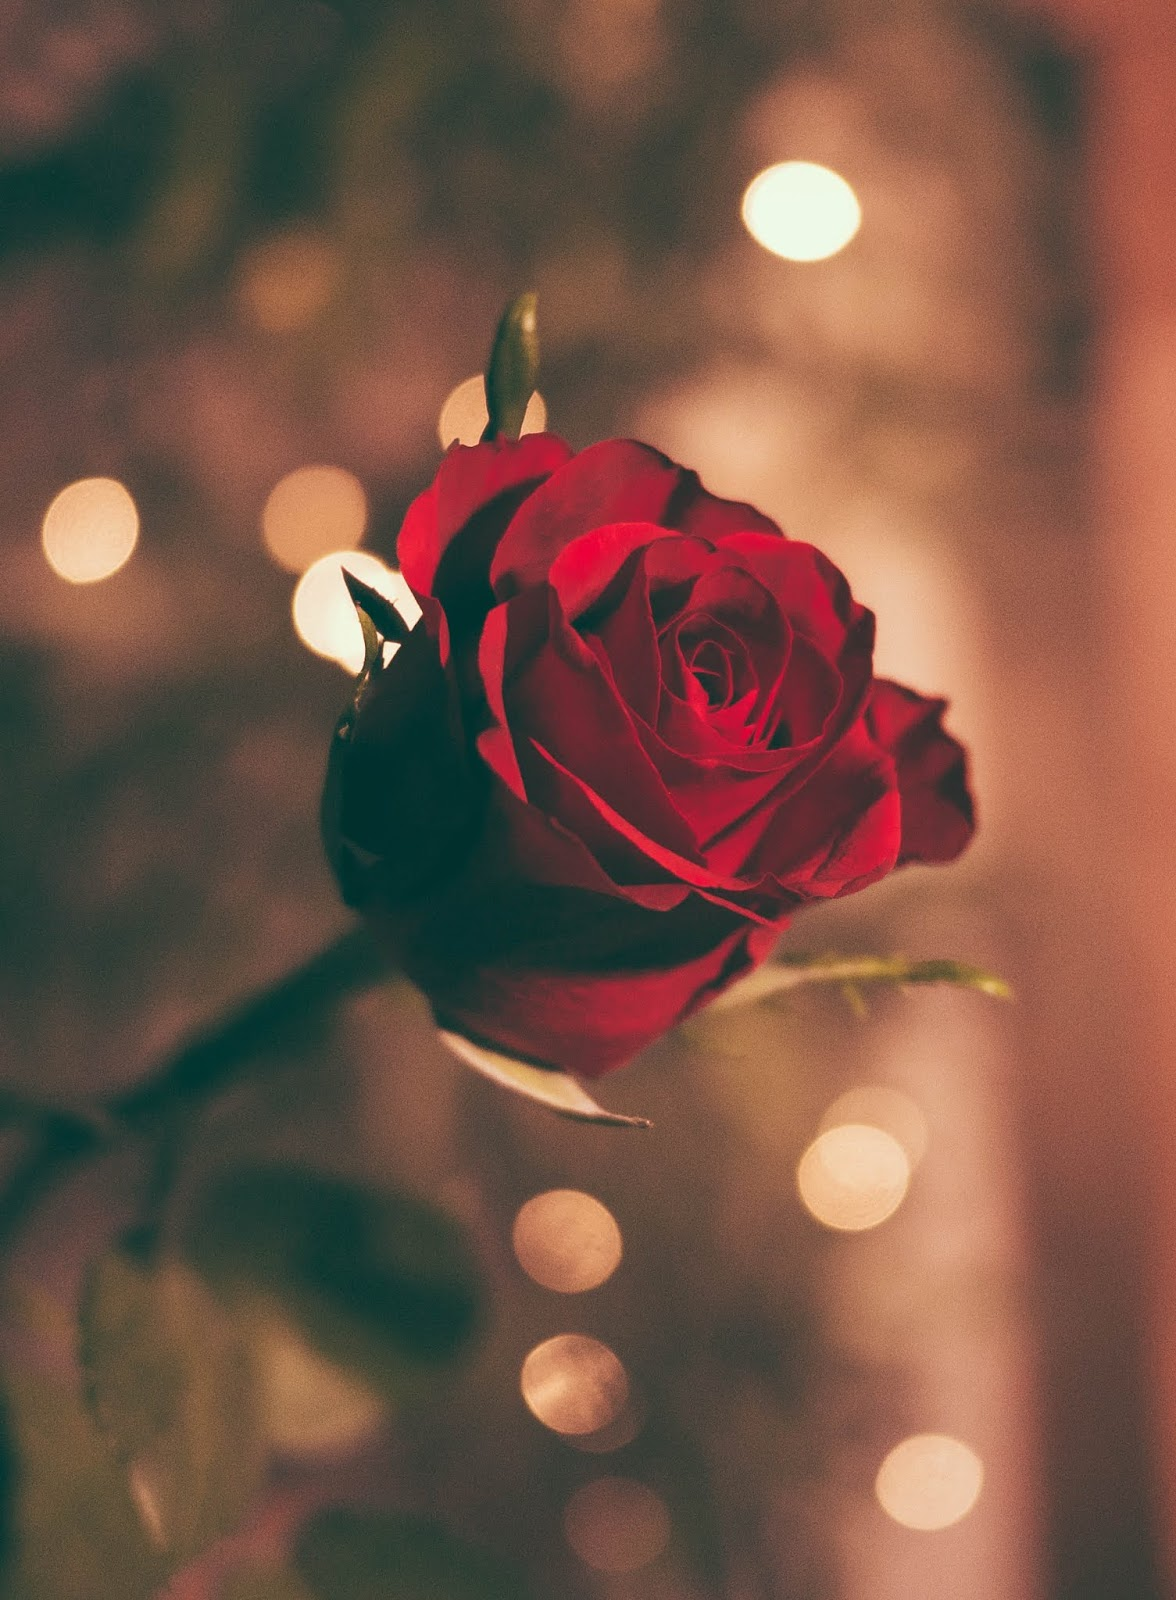 focused photo of a red rose, rose images